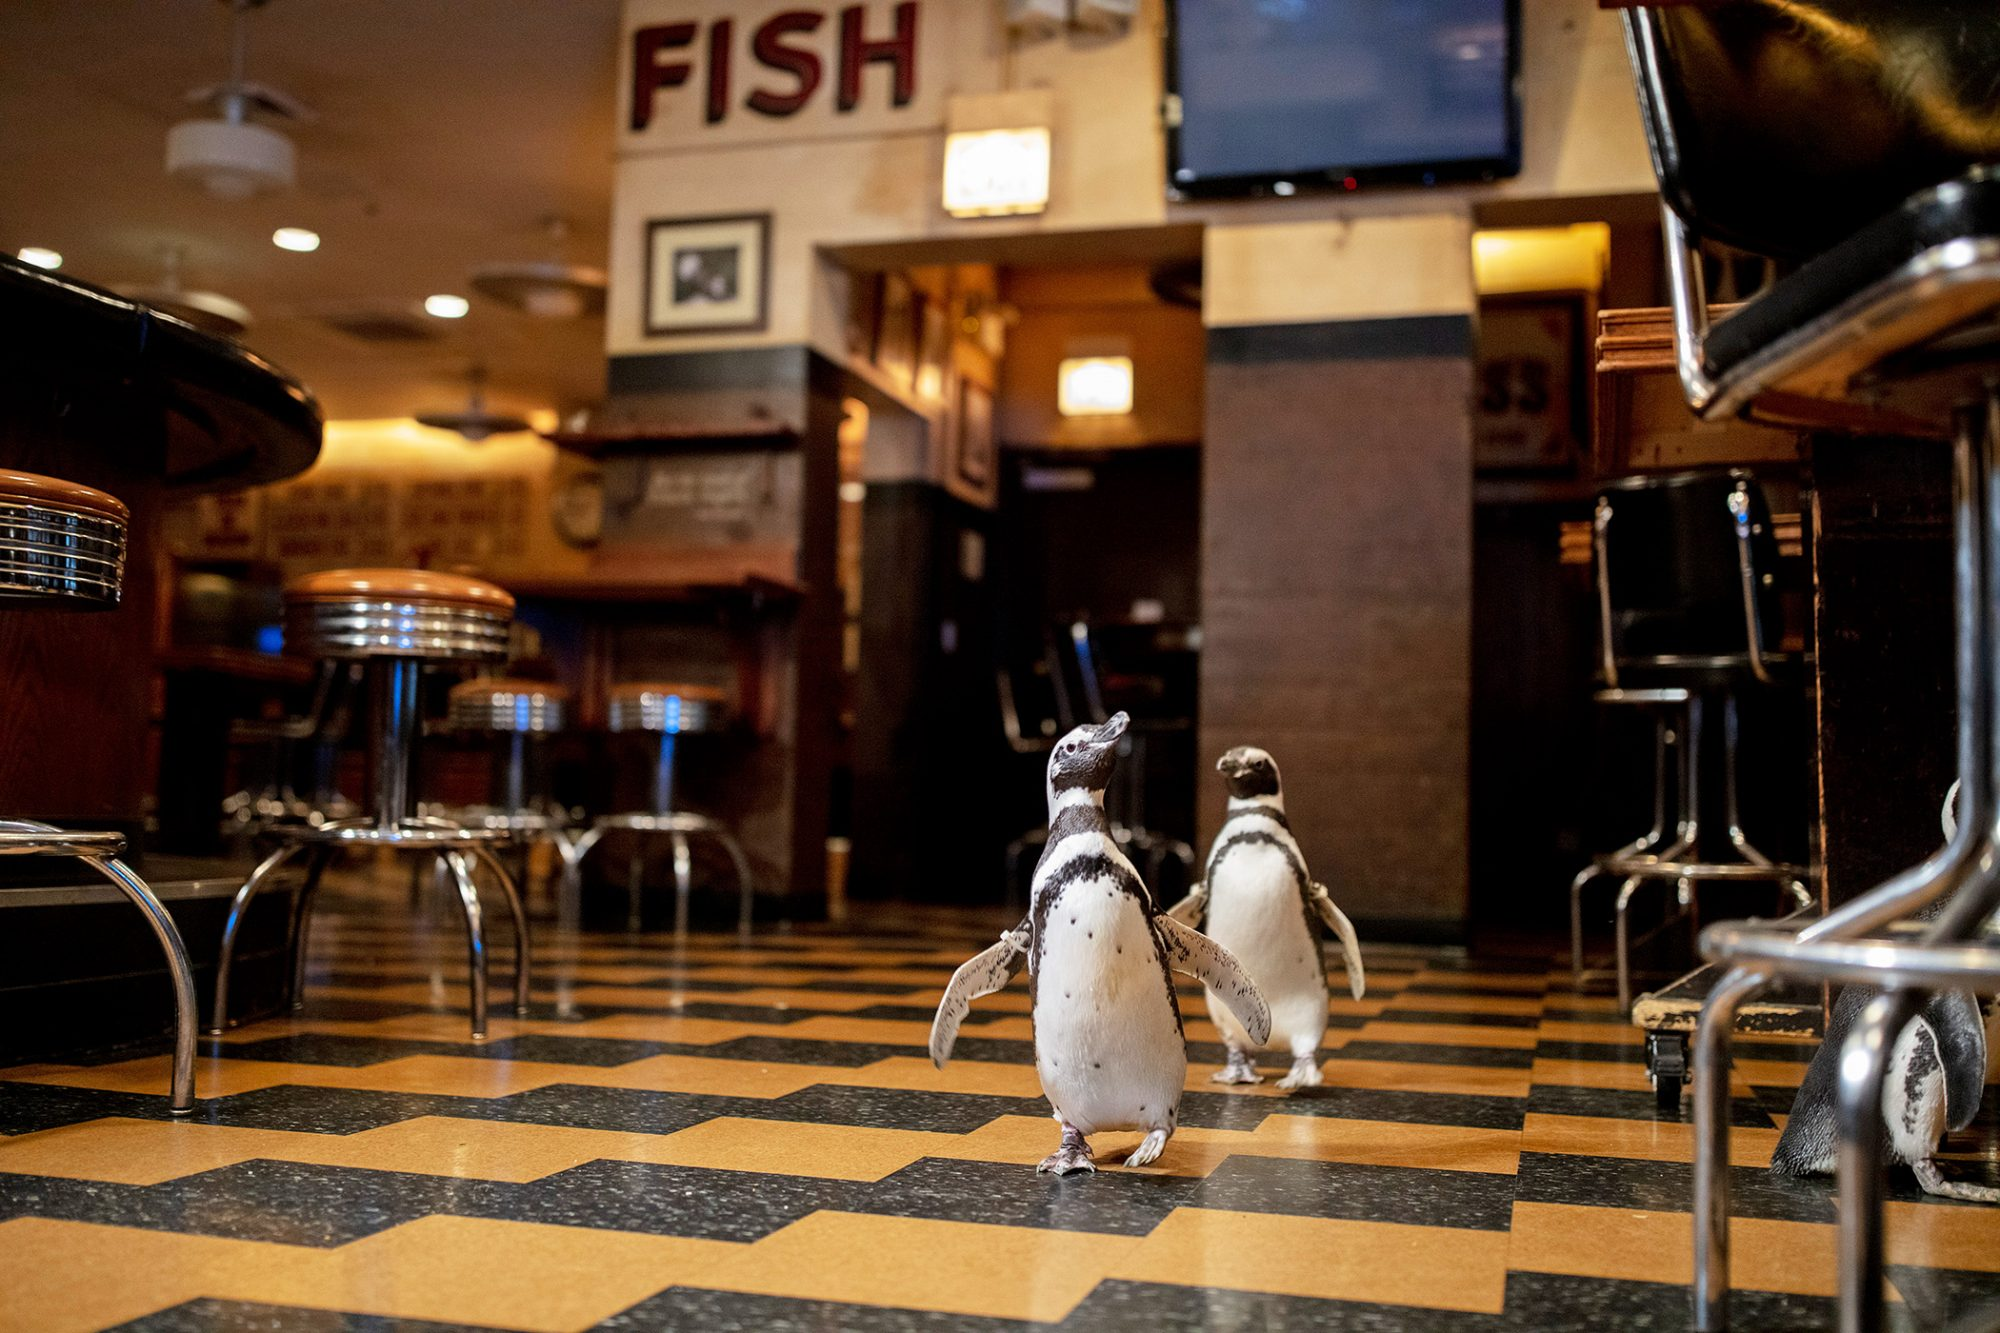 two penguins walking through a restautant